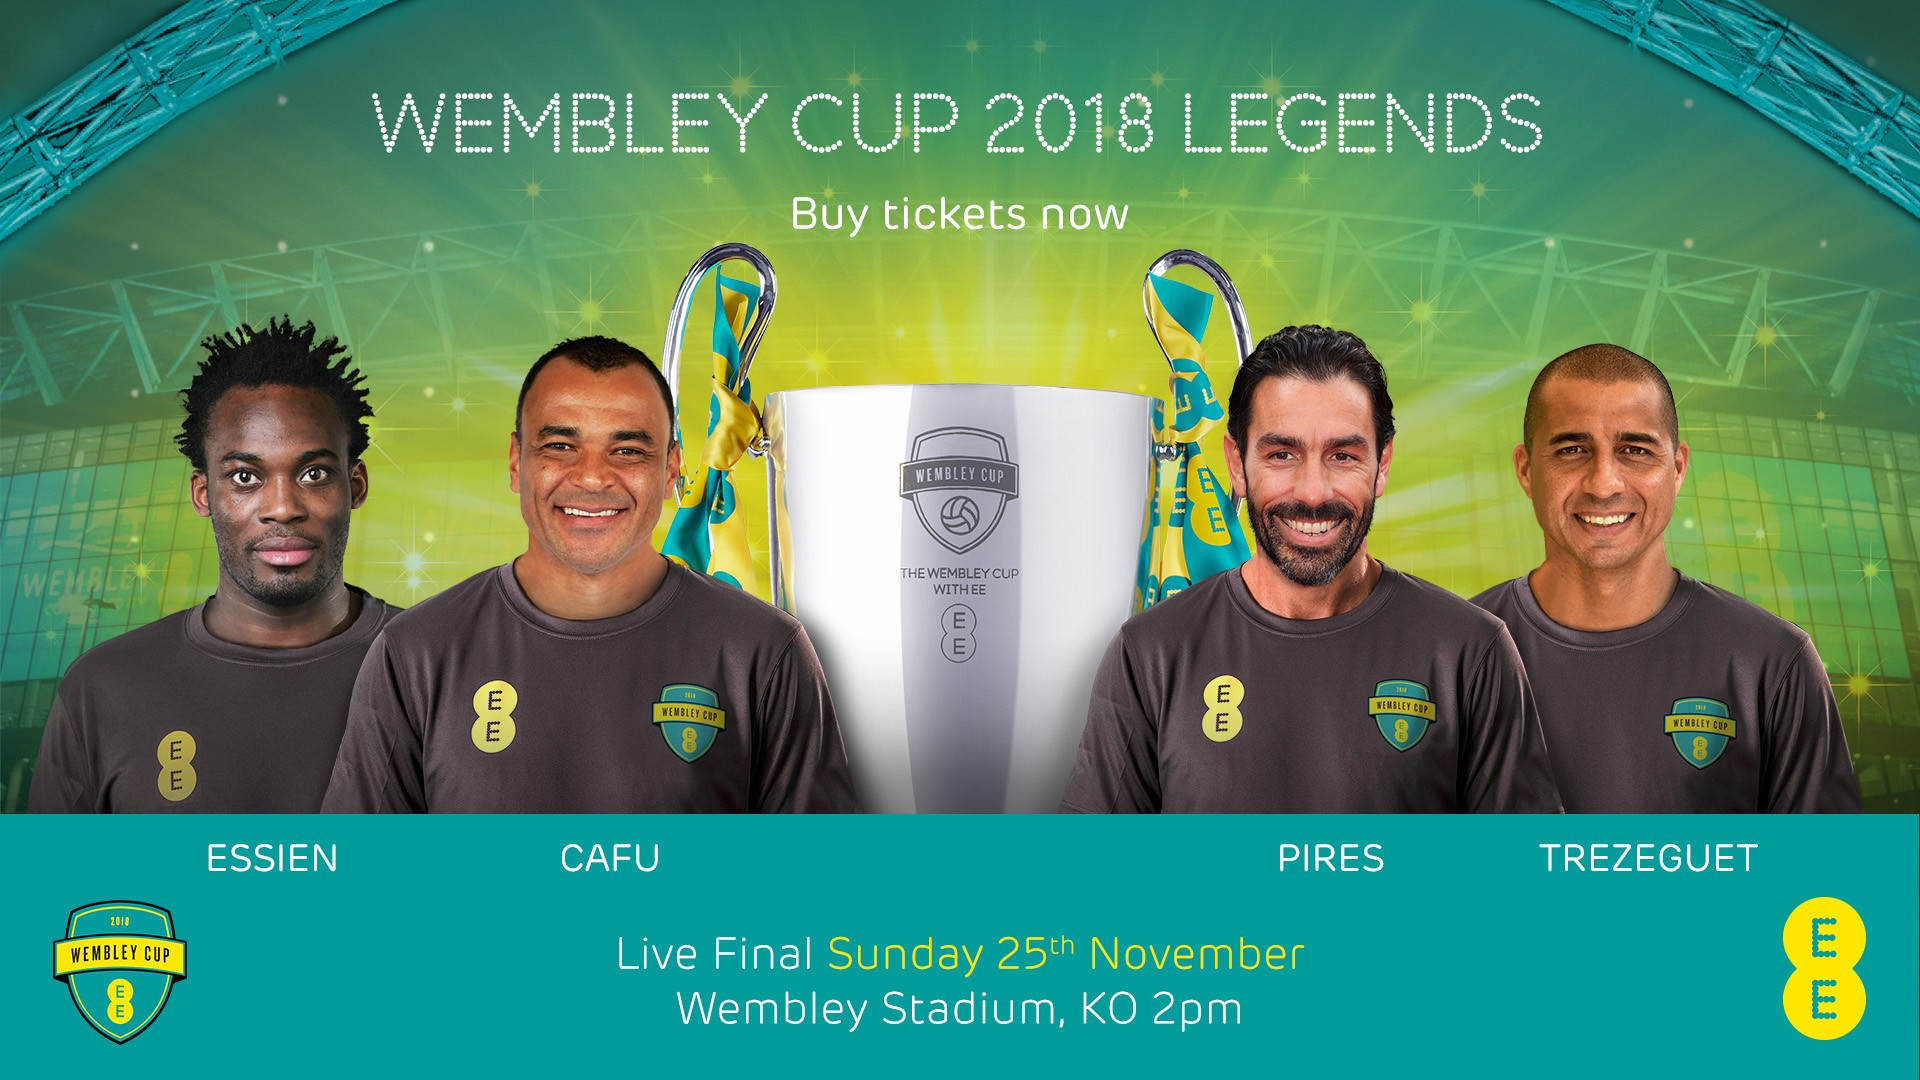 The EE Wembley Cup 2018 Legends